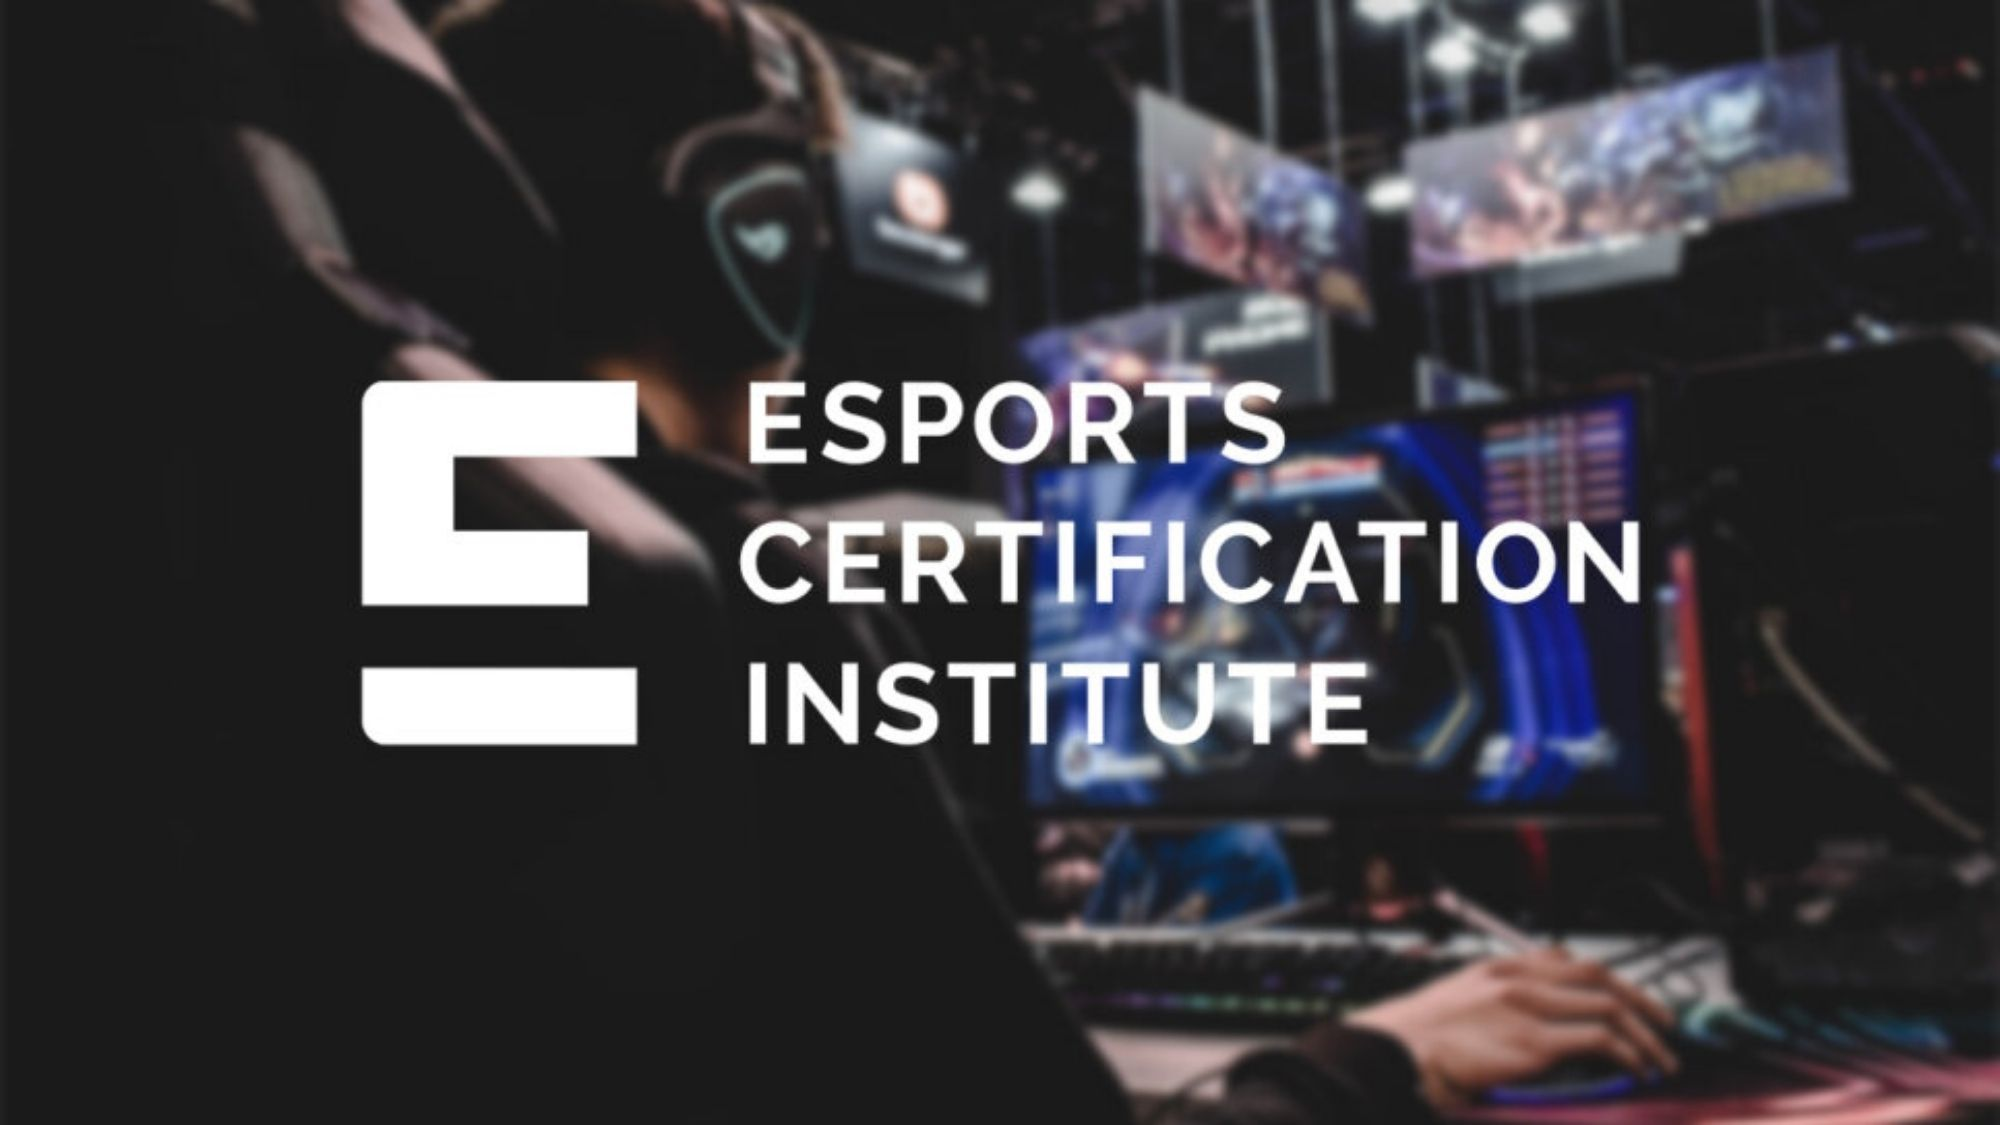 Costly Esports certification exam shut down after criticisms from players